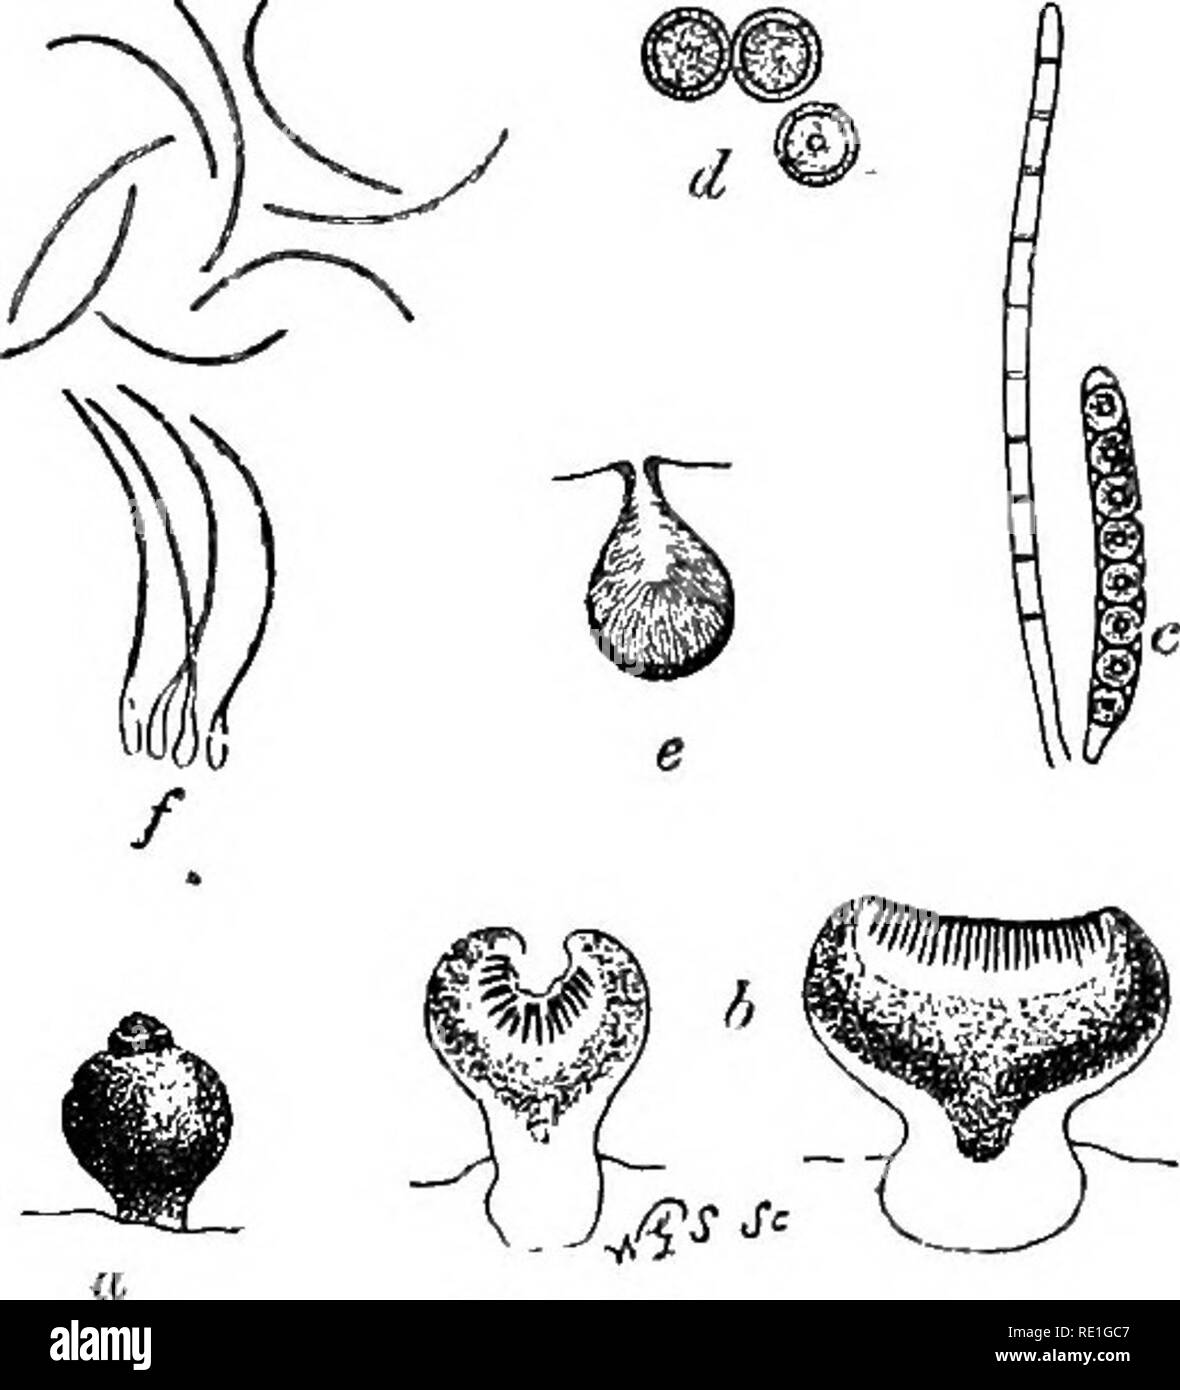 . A monograph of lichens found in Britain; being a descriptive catalogue of the species in the herbarium of the British Museum. Lichens. SPHKfCTRINA.] CAtlCIEI. 83 brownish or blackish, paraphyses usually little developed; hy menial gelatine scanty. Spsrmogoaes punetiform, black, the sterigmata somewhat simple. This tribe consists of rather small plants, som? of which are paragitio and readily overlooked, while others are conspicuous from their brightly coloured thalli. The ap^thecia sometimes have the stipes abnormally branched, and occasionally the capitulum ia proliferous. 20. SPHINCTRINA F - Stock Image